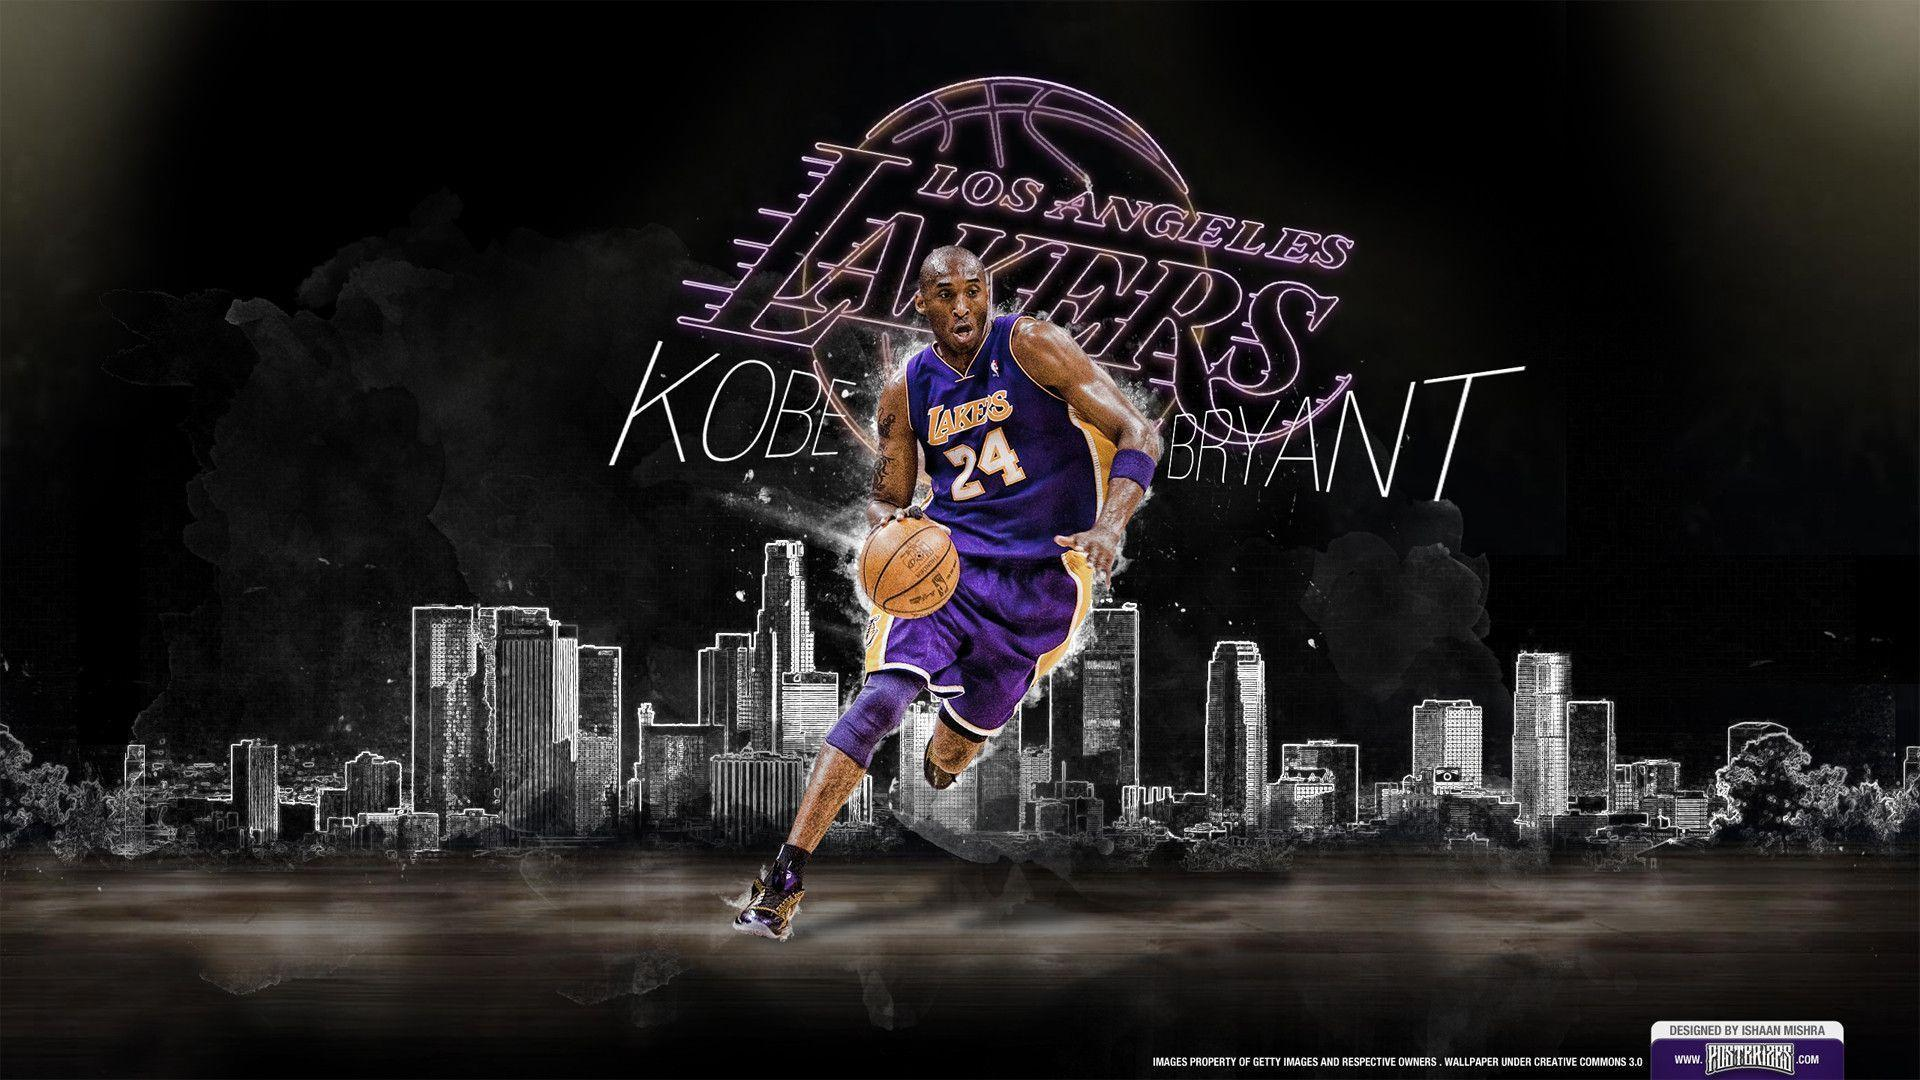 Kobe bryant wallpapers wallpaper cave - Cool nba background ...